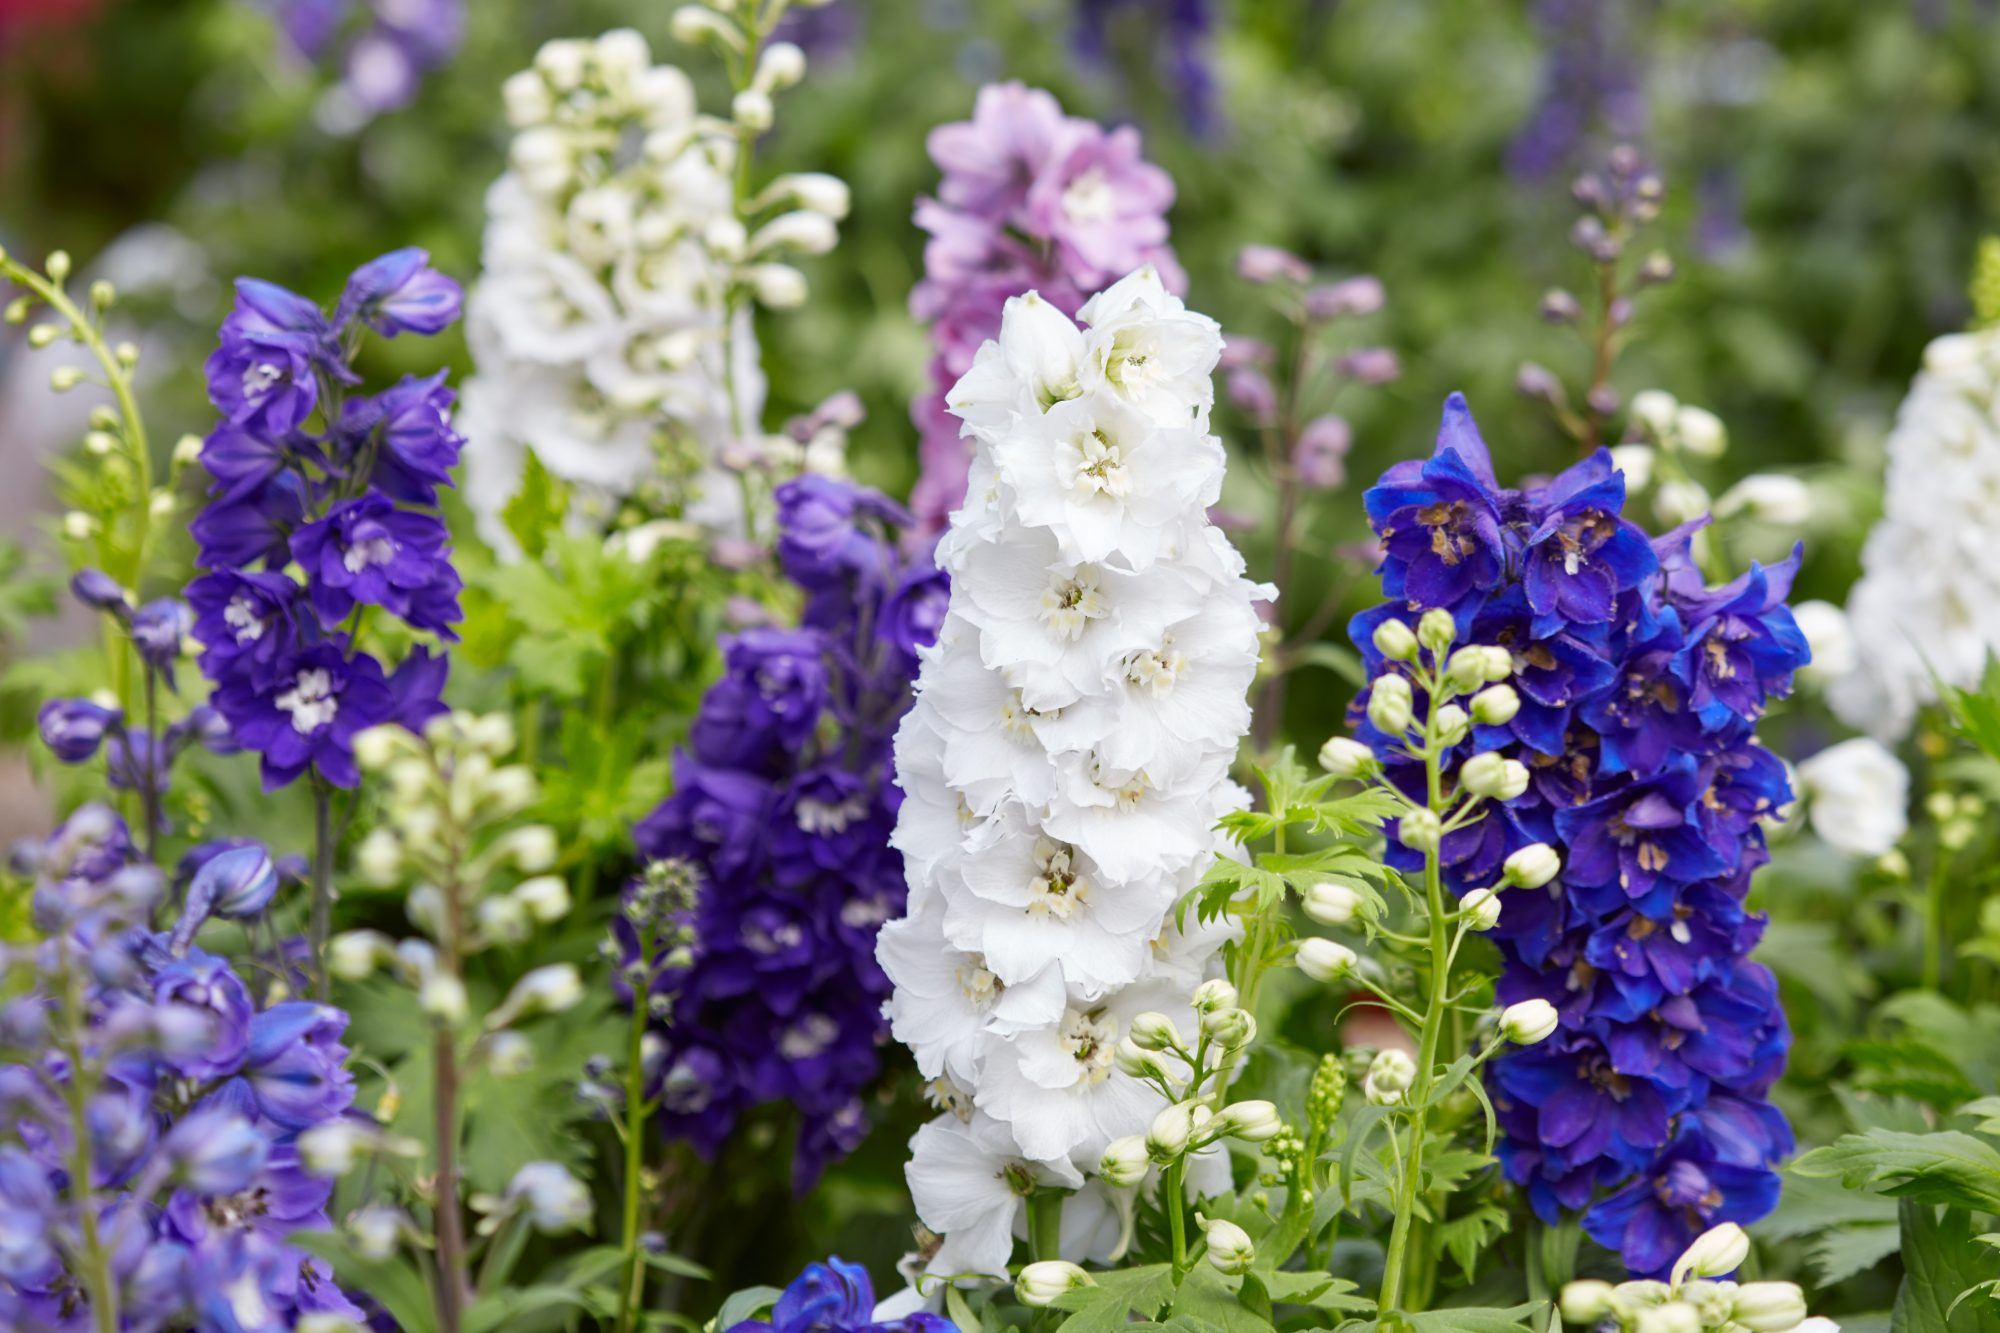 Delphinium Is the Flower Your Garden Has Been Missing